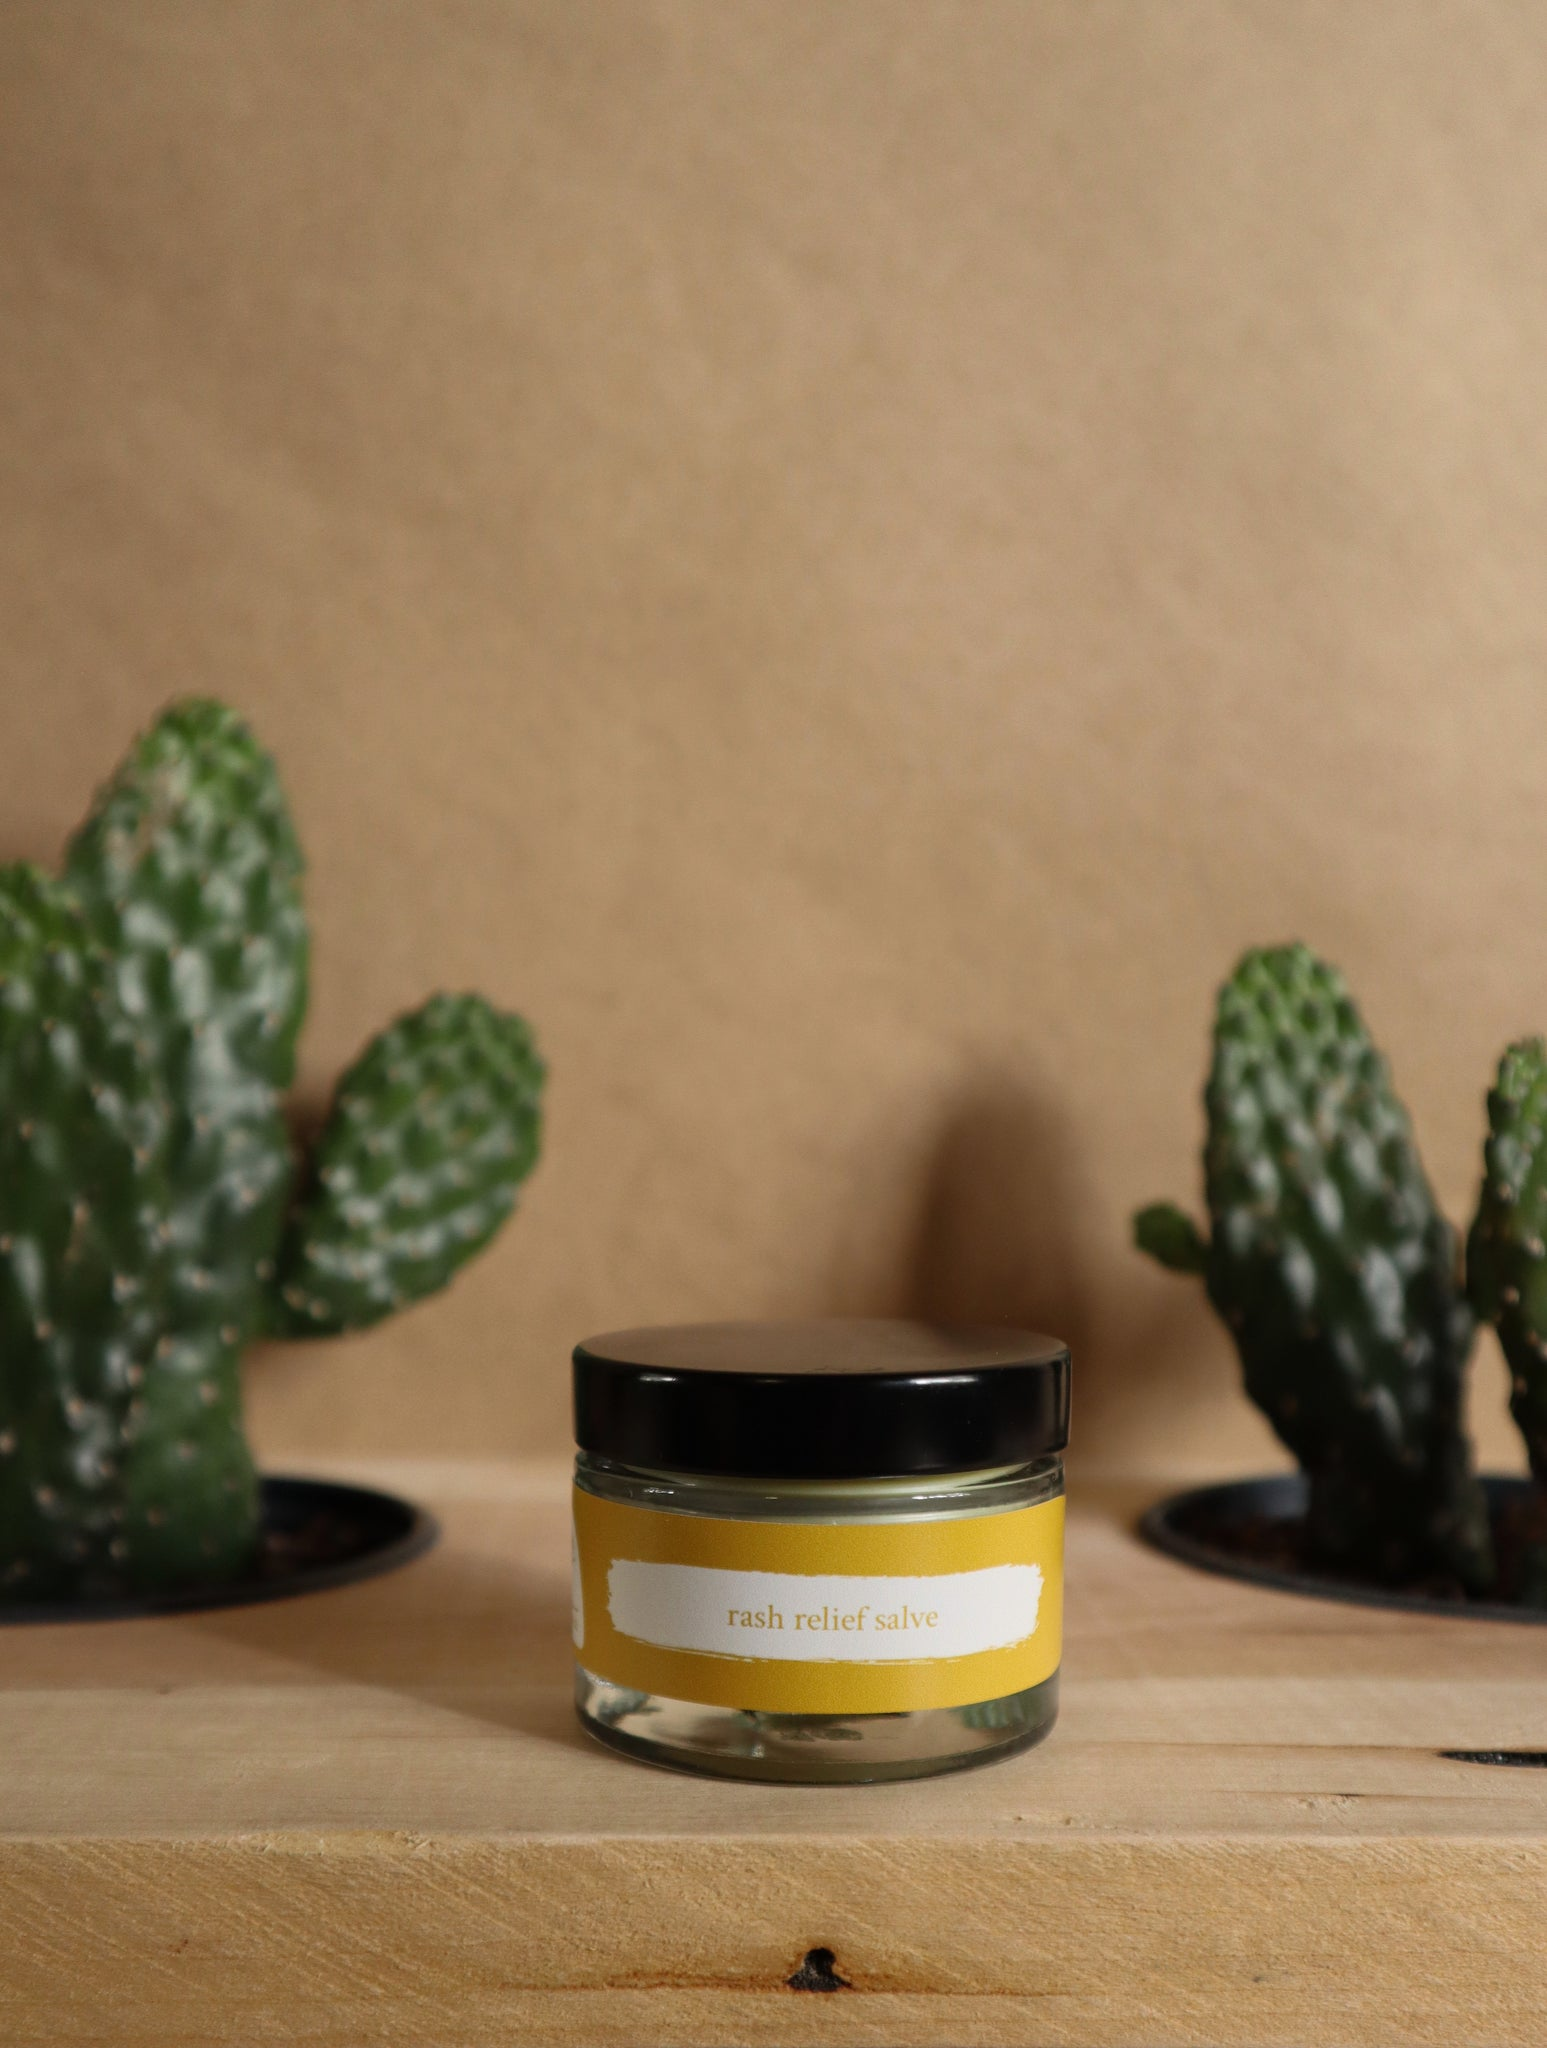 rash relief salve.